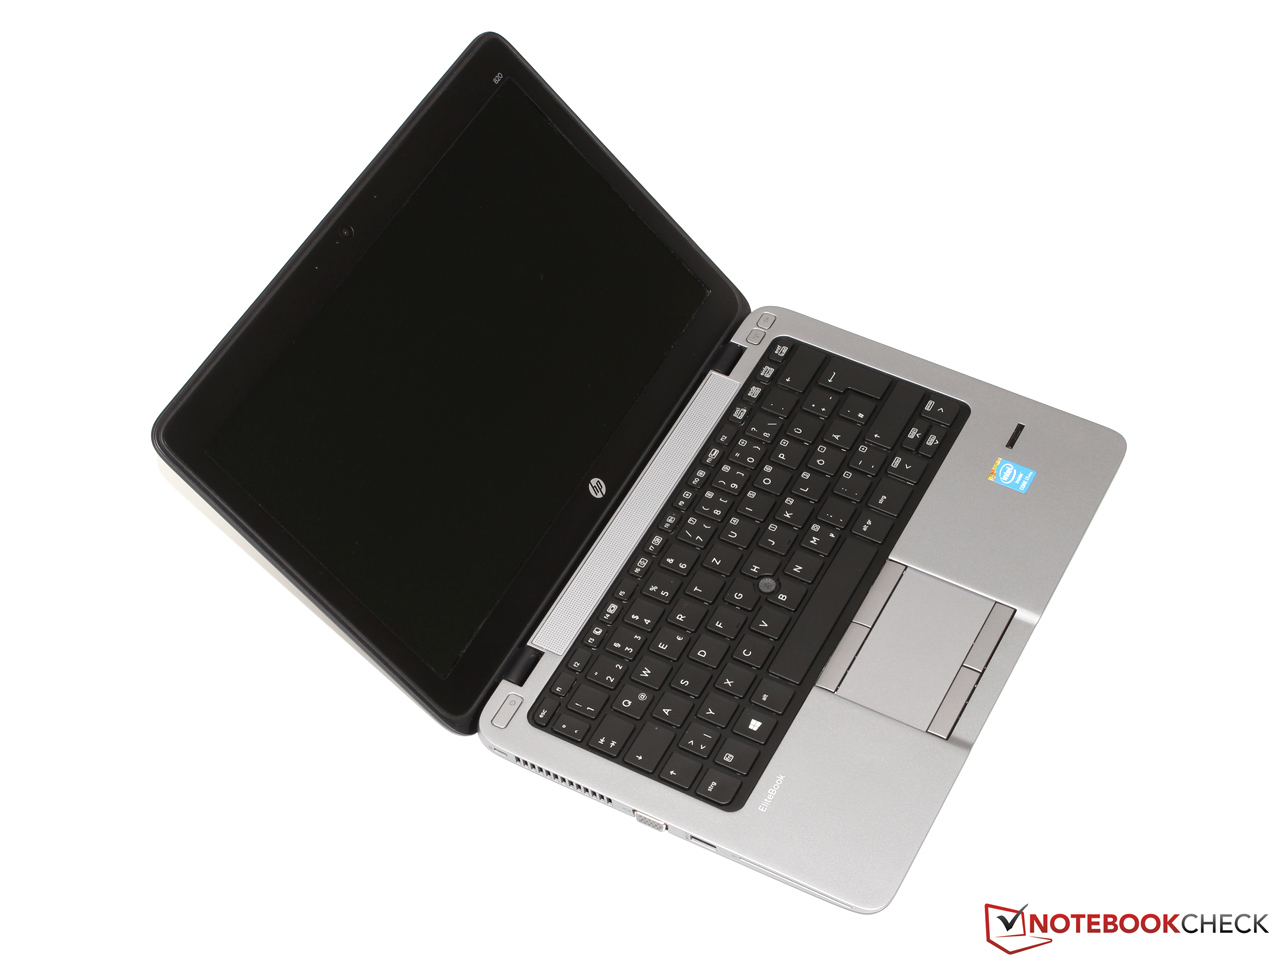 Hp Elitebook 820 G2 Subnotebook Review